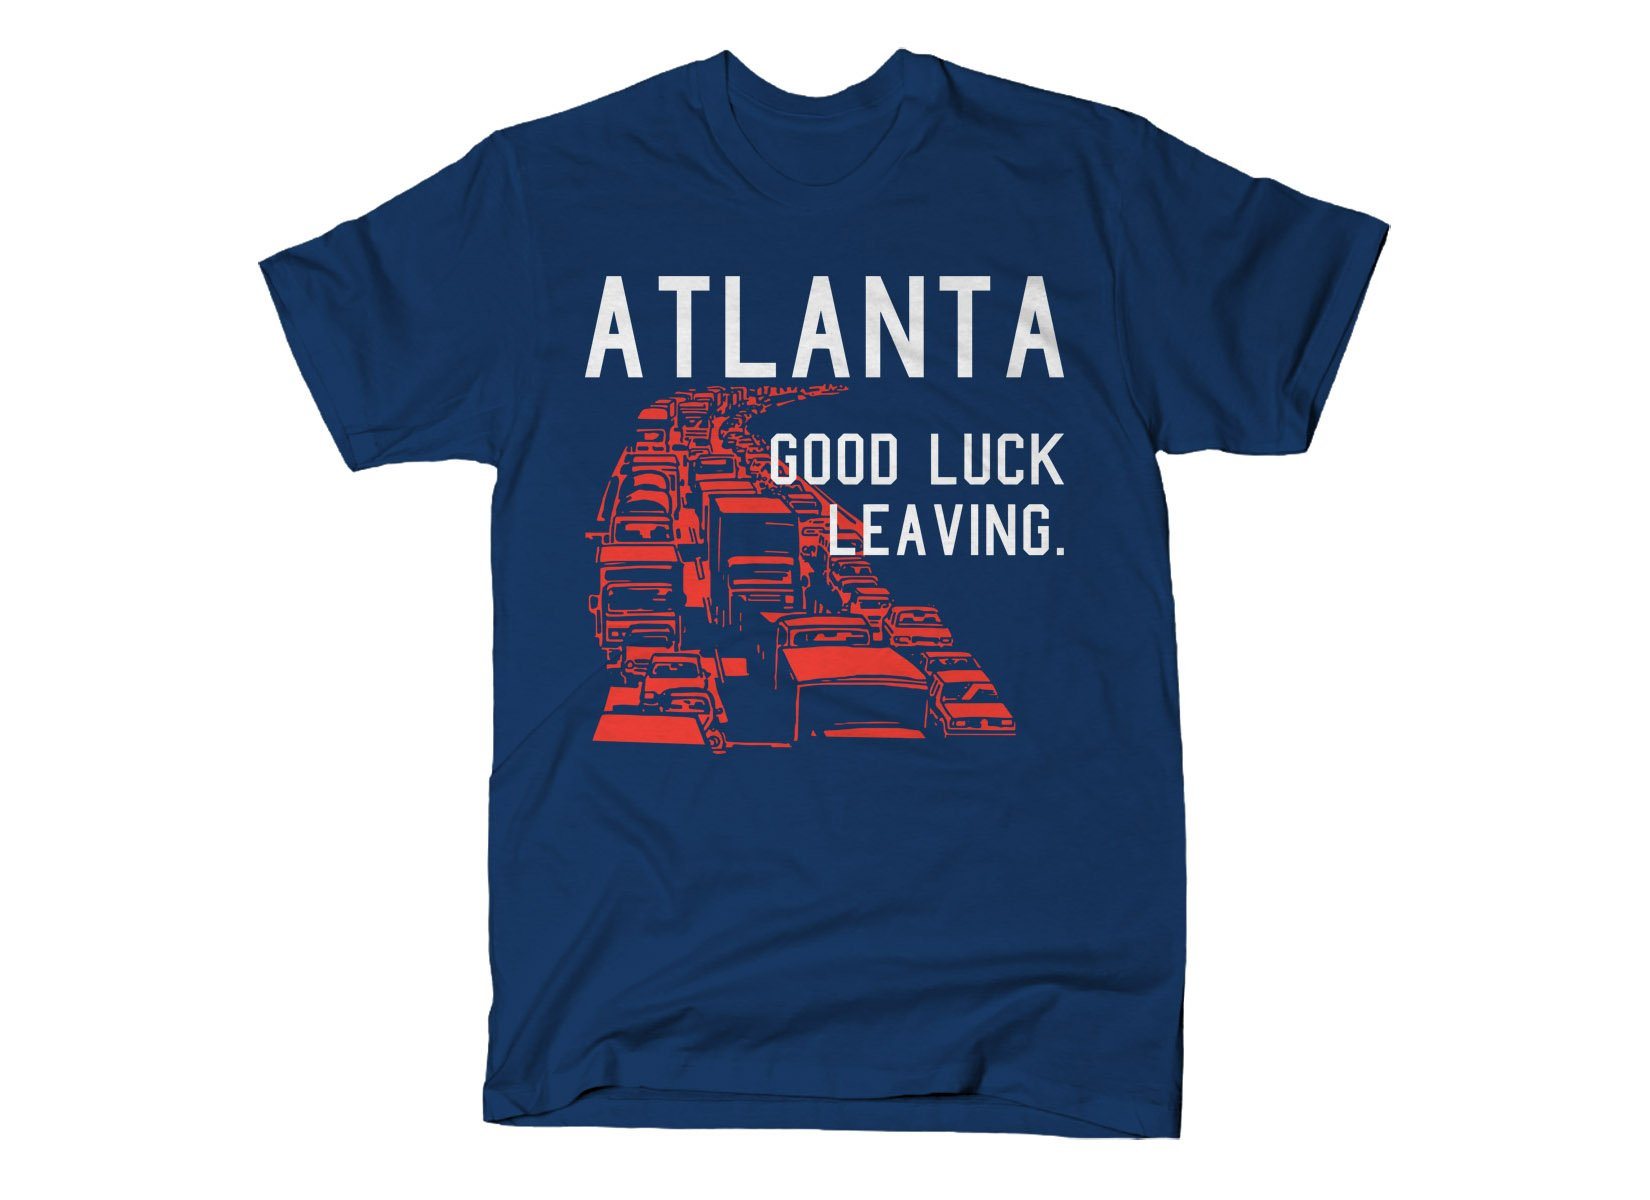 Atlanta, Good Luck Leaving.